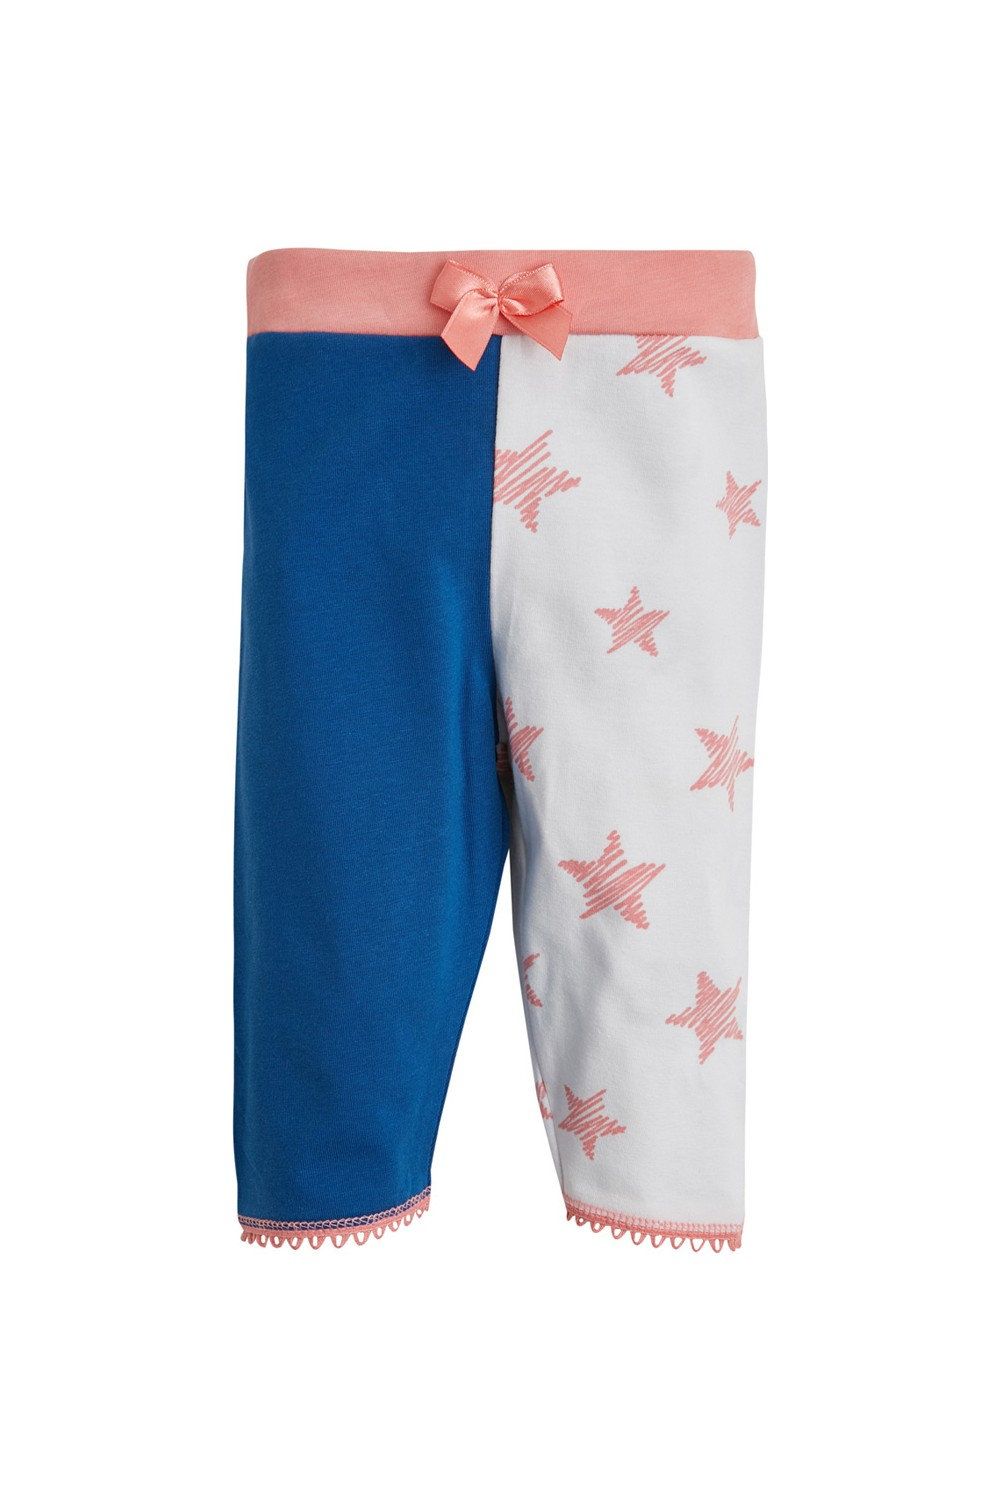 Soobe Girls Printed Pajama